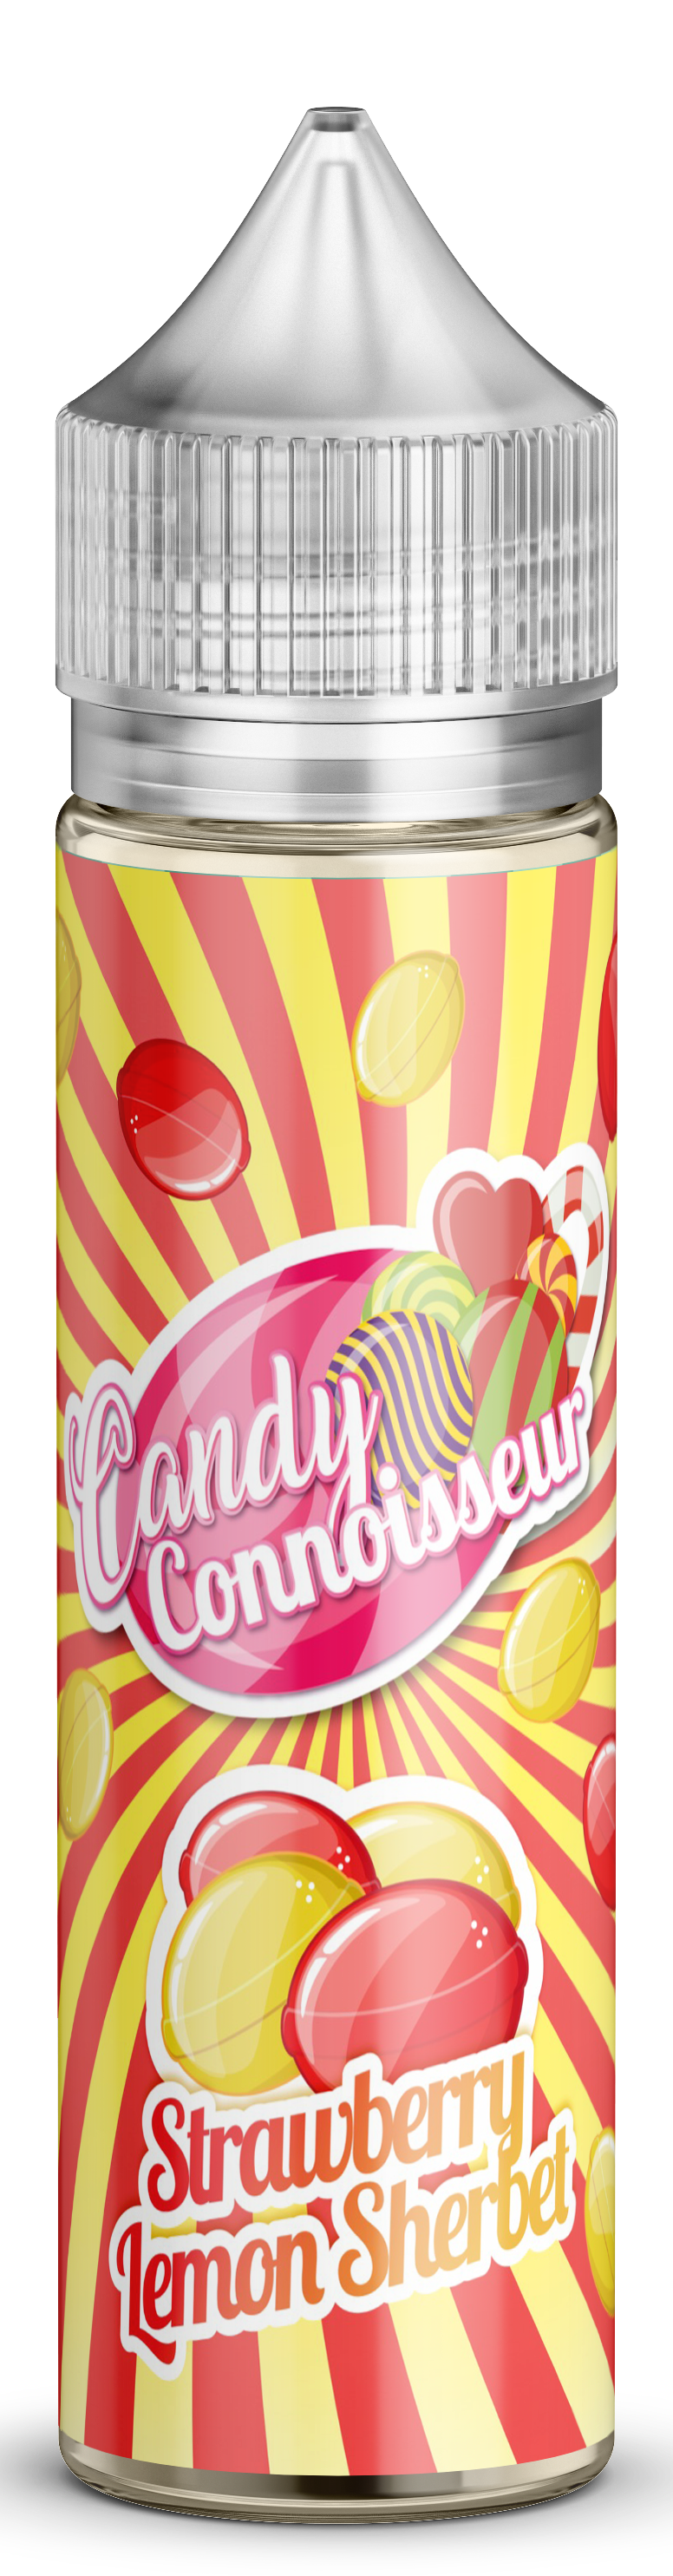 Strawberry & Lemon Sherbet - Candy 50ml